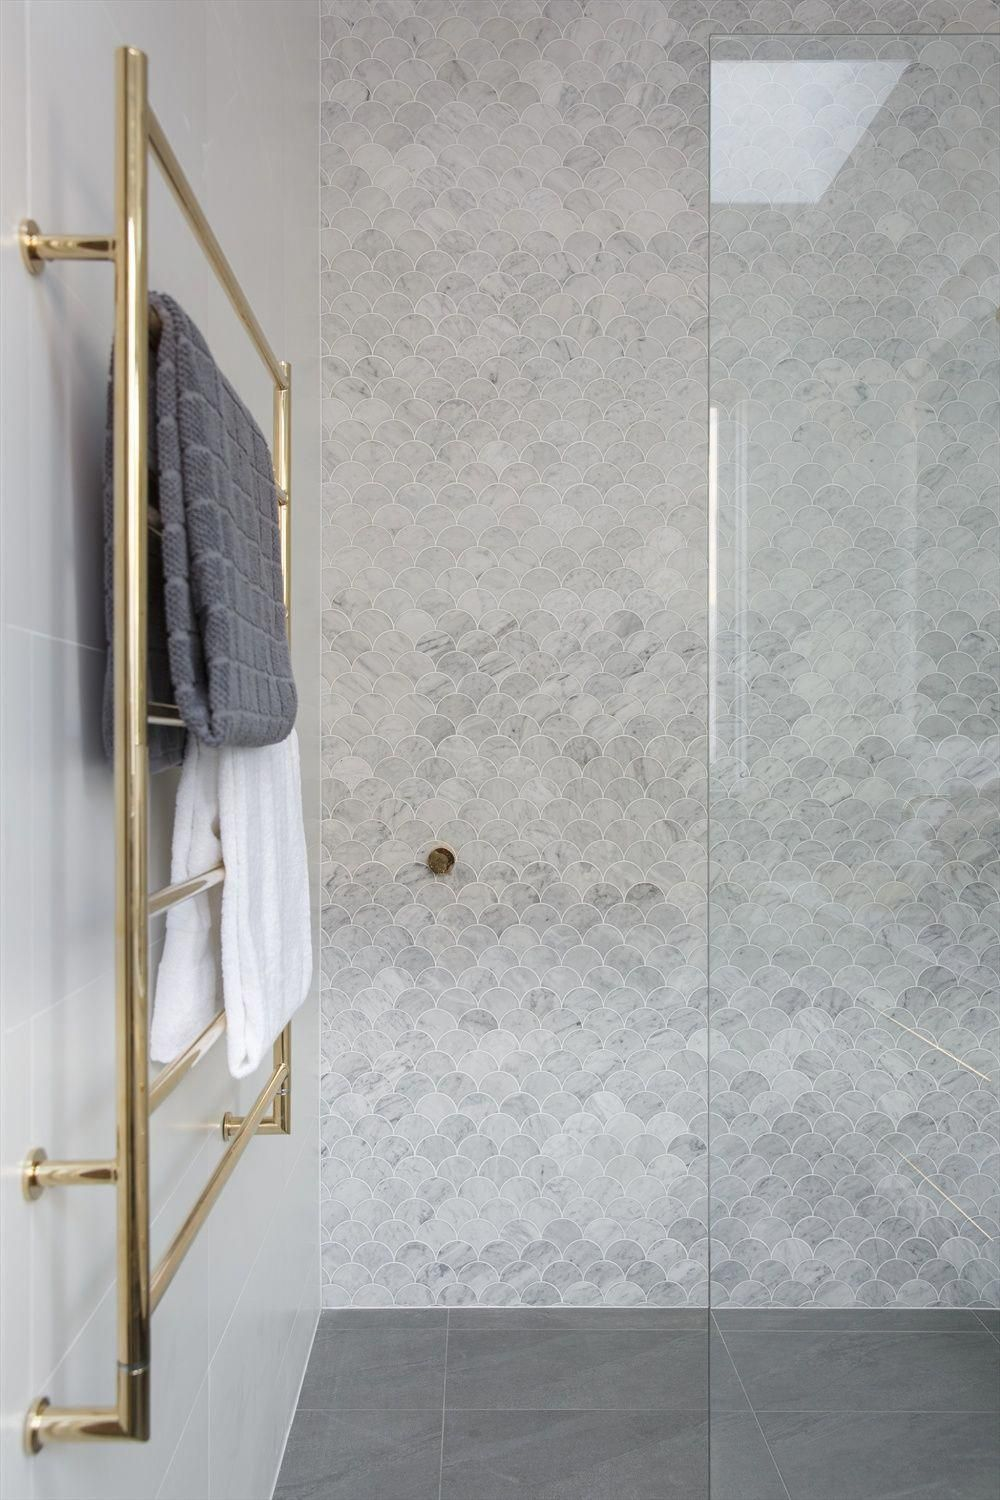 What Do You Think Of This Bathrooms Idea I Got From Beaumont Tiles Check Out More Ideas Here Tile C Kid Bathroom Decor Bathroom Decor Bathroom Interior Design